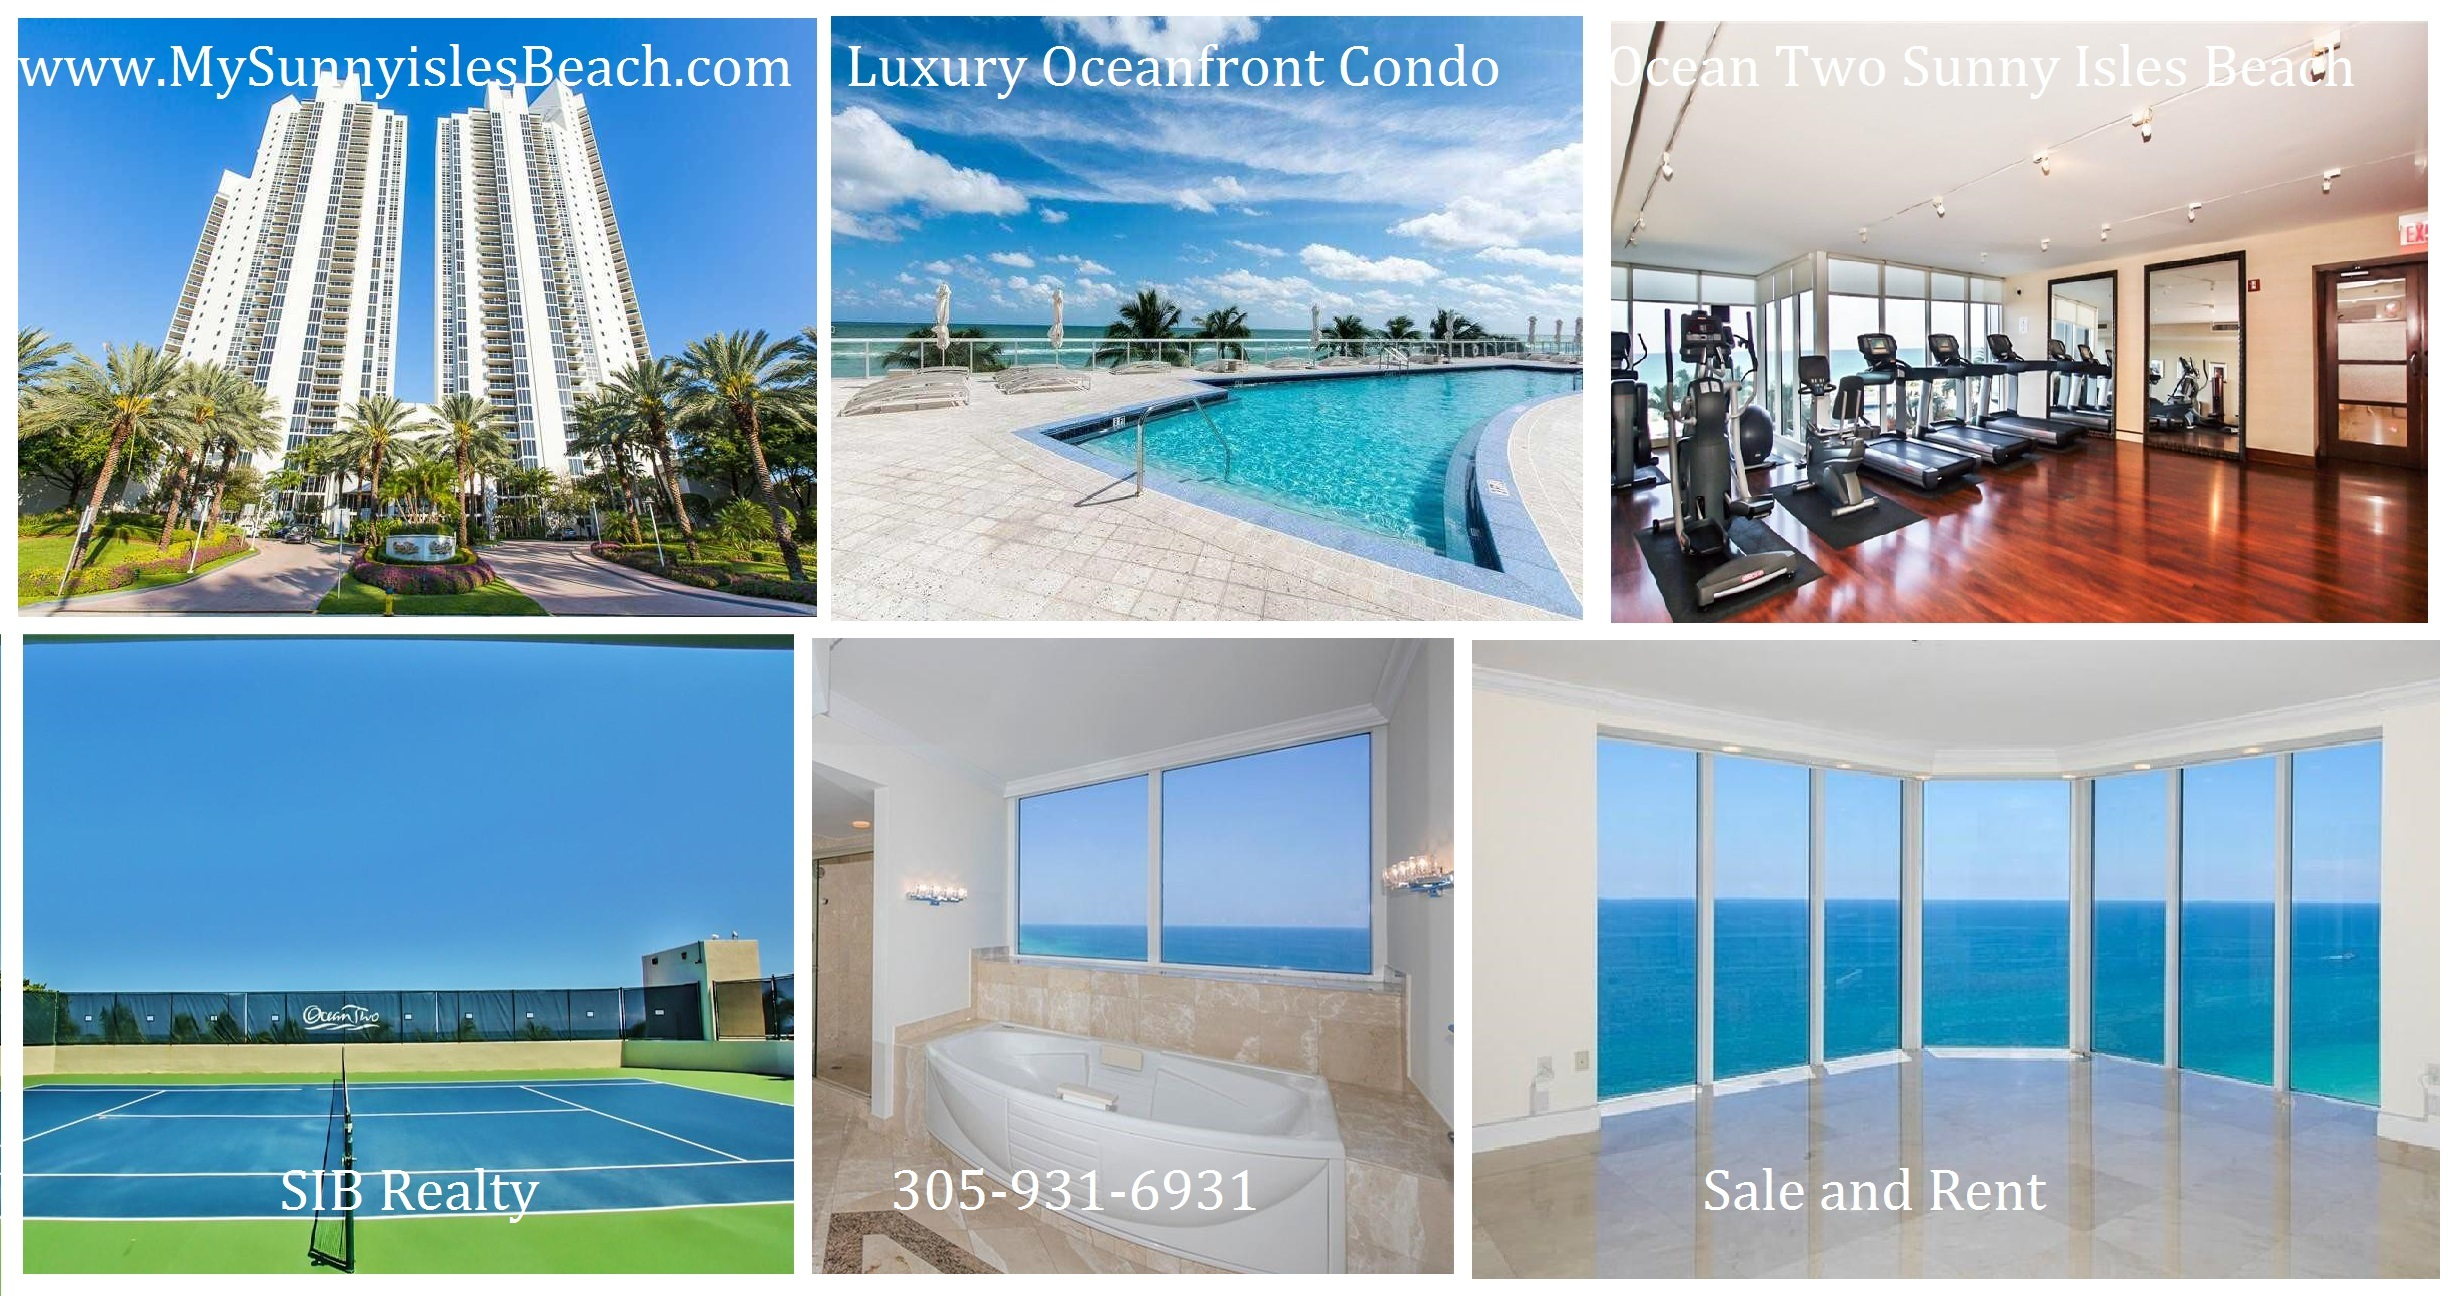 Ocean Two Sunny Isles Beach Condo for Sale SIB Realty